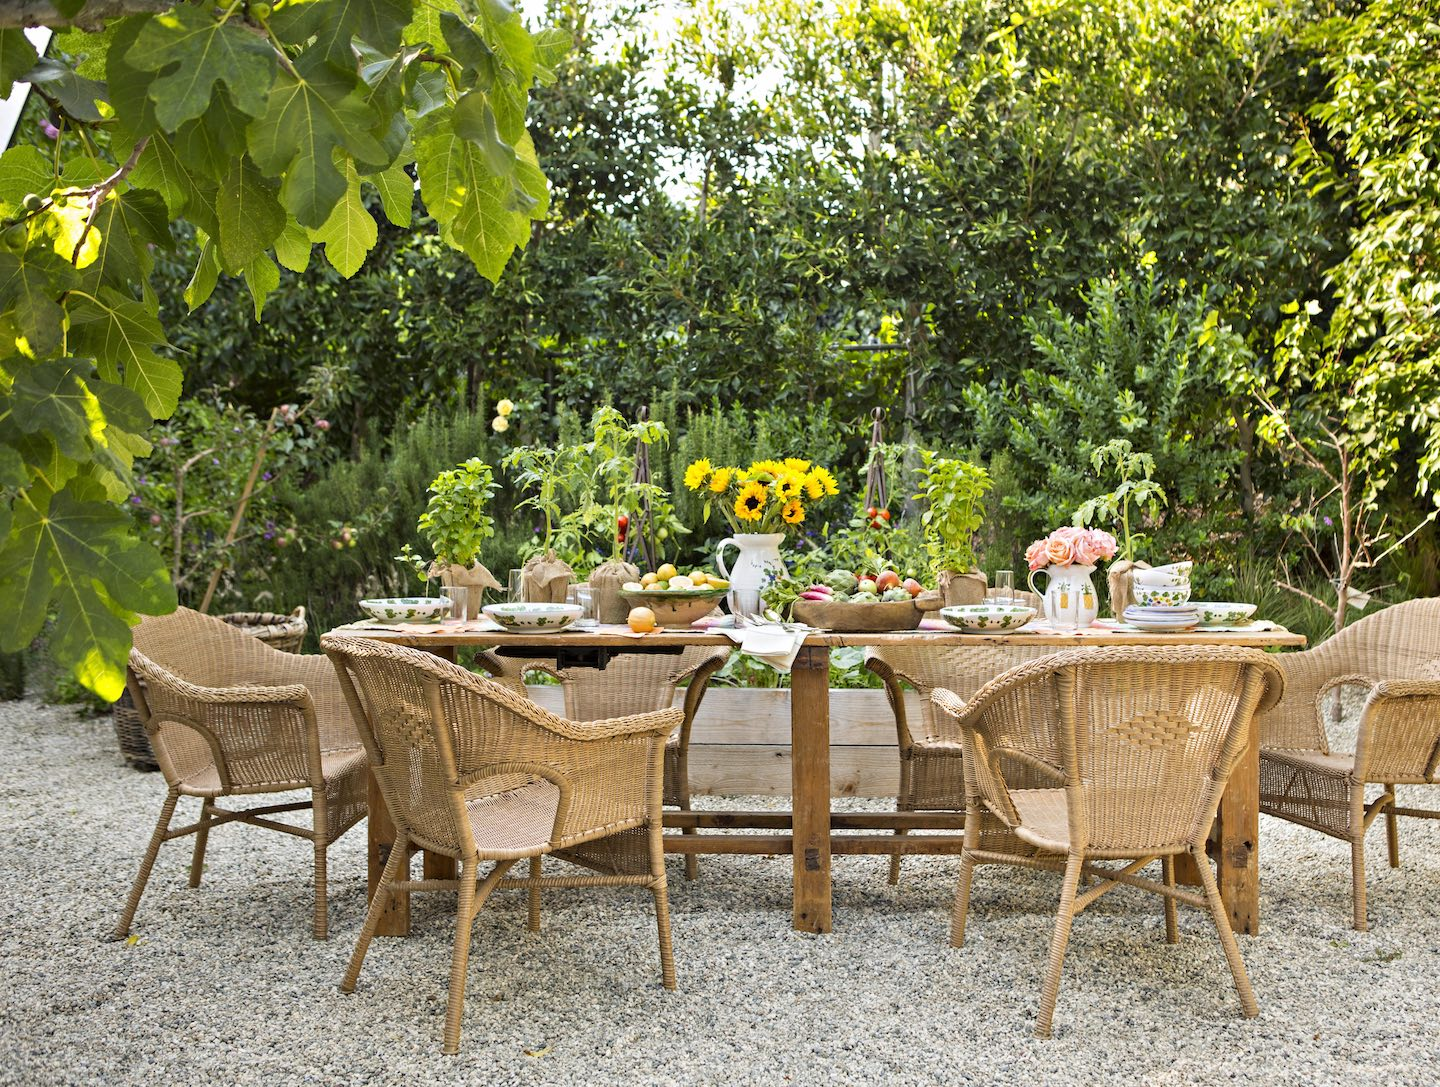 rattan garden chairs and a farm table in the vegetable garden